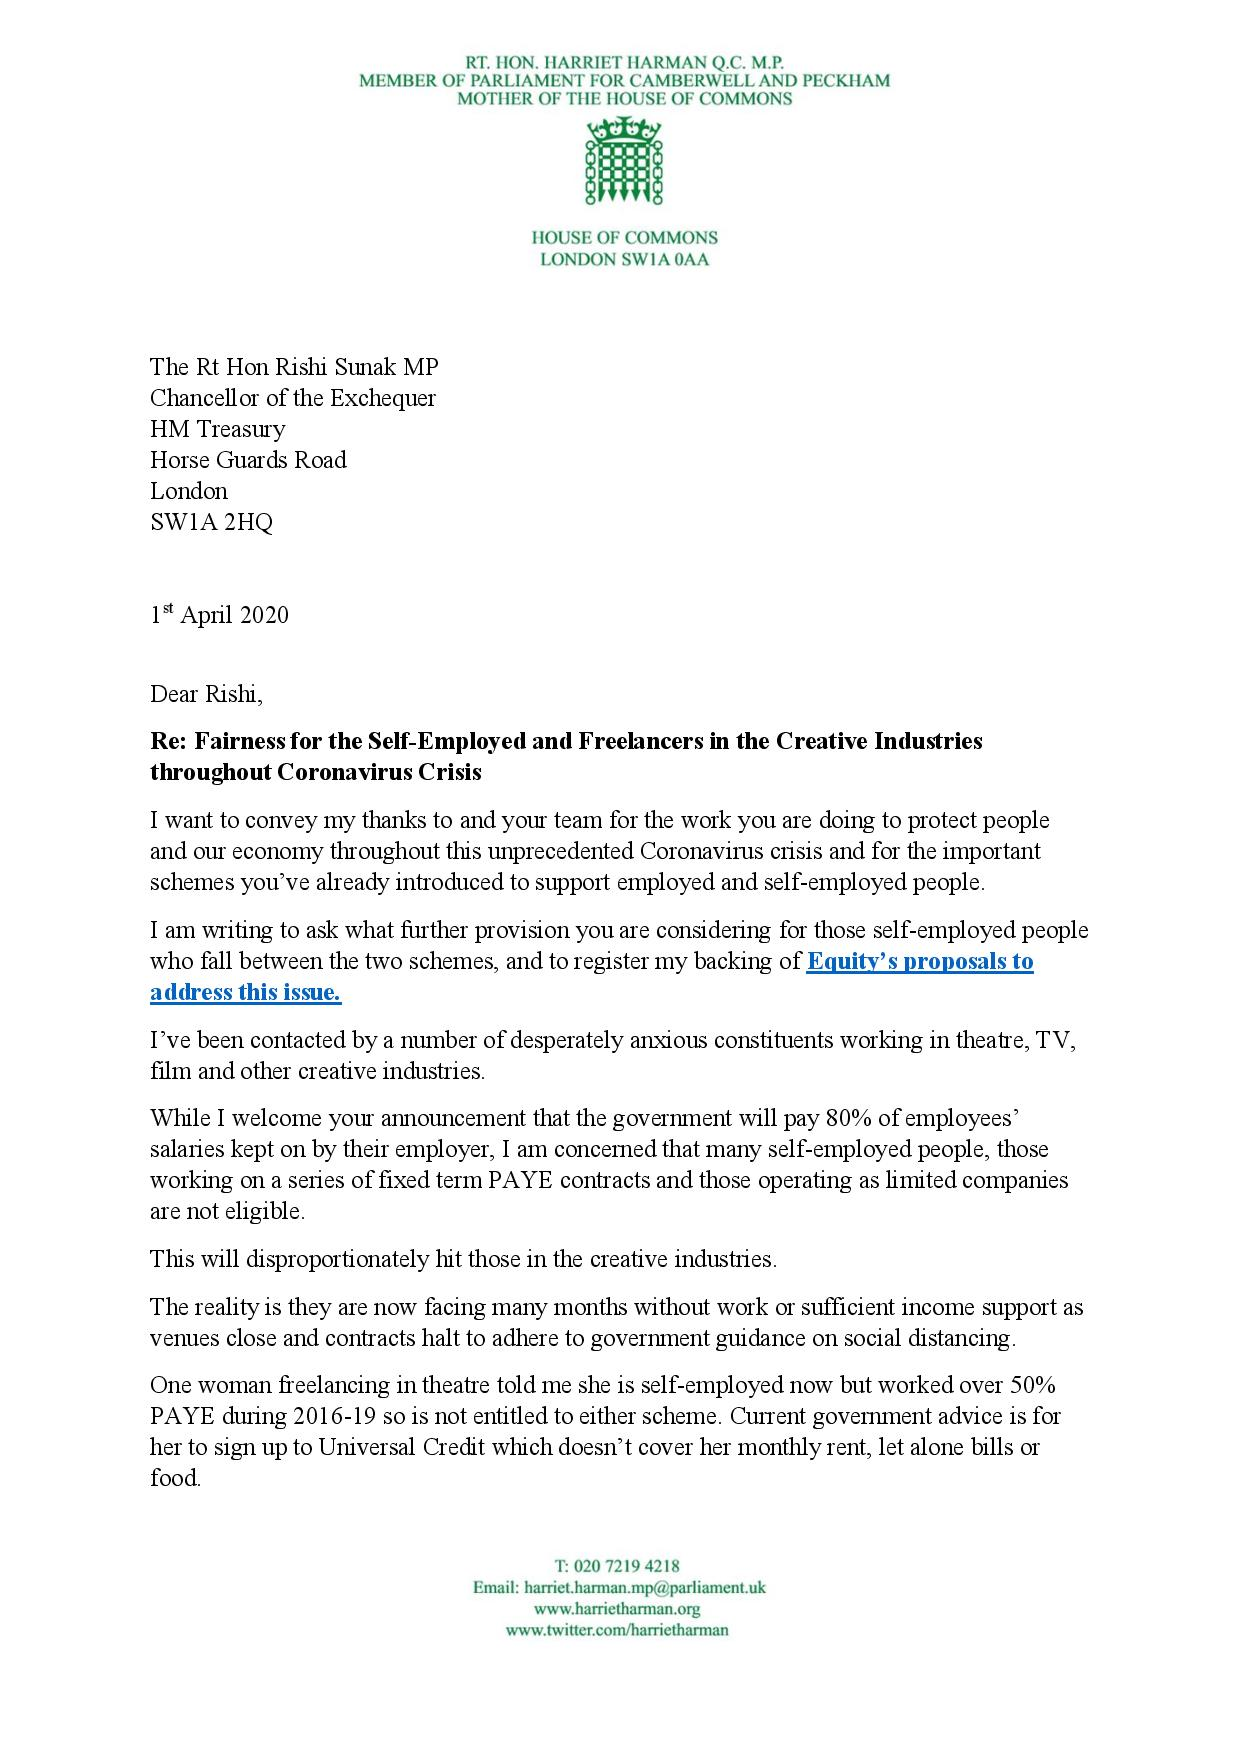 Letter_from_Rt_Hon_Harriet_Harman_QC_MP_to_the_Chancellor_01.04.2020-page-001.jpg